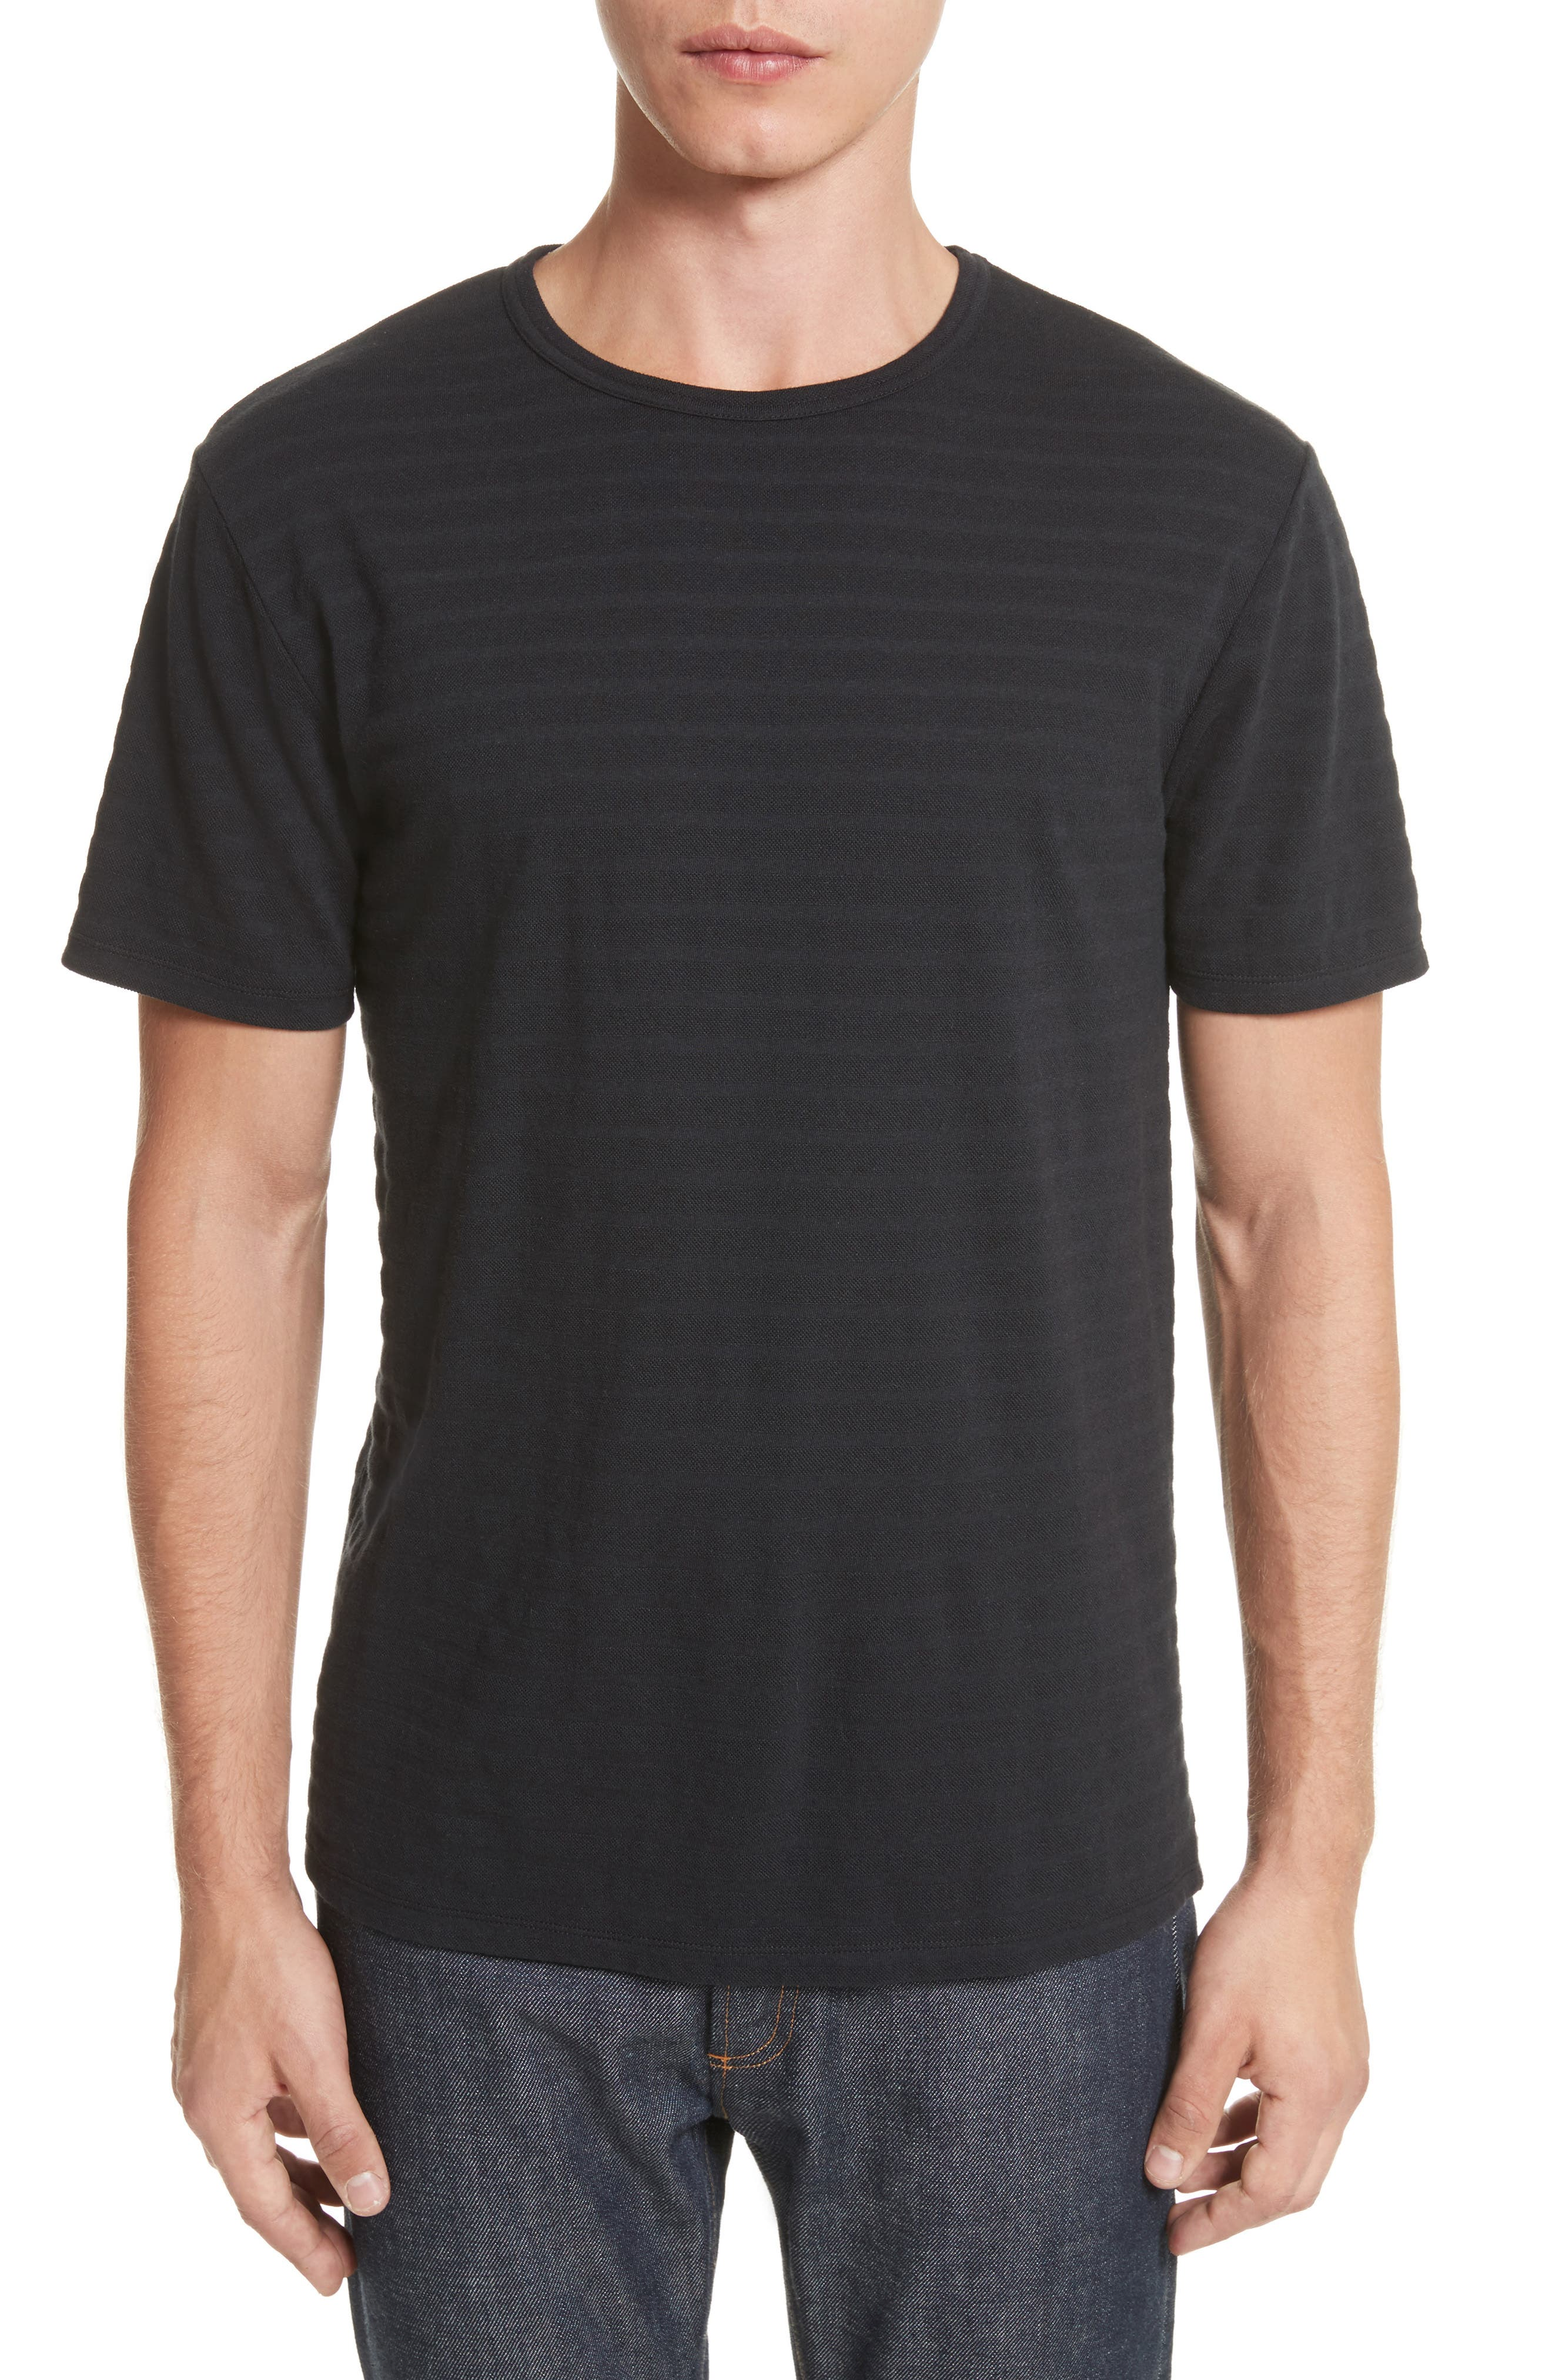 Winston Crewneck T-Shirt,                             Main thumbnail 1, color,                             Anthracite